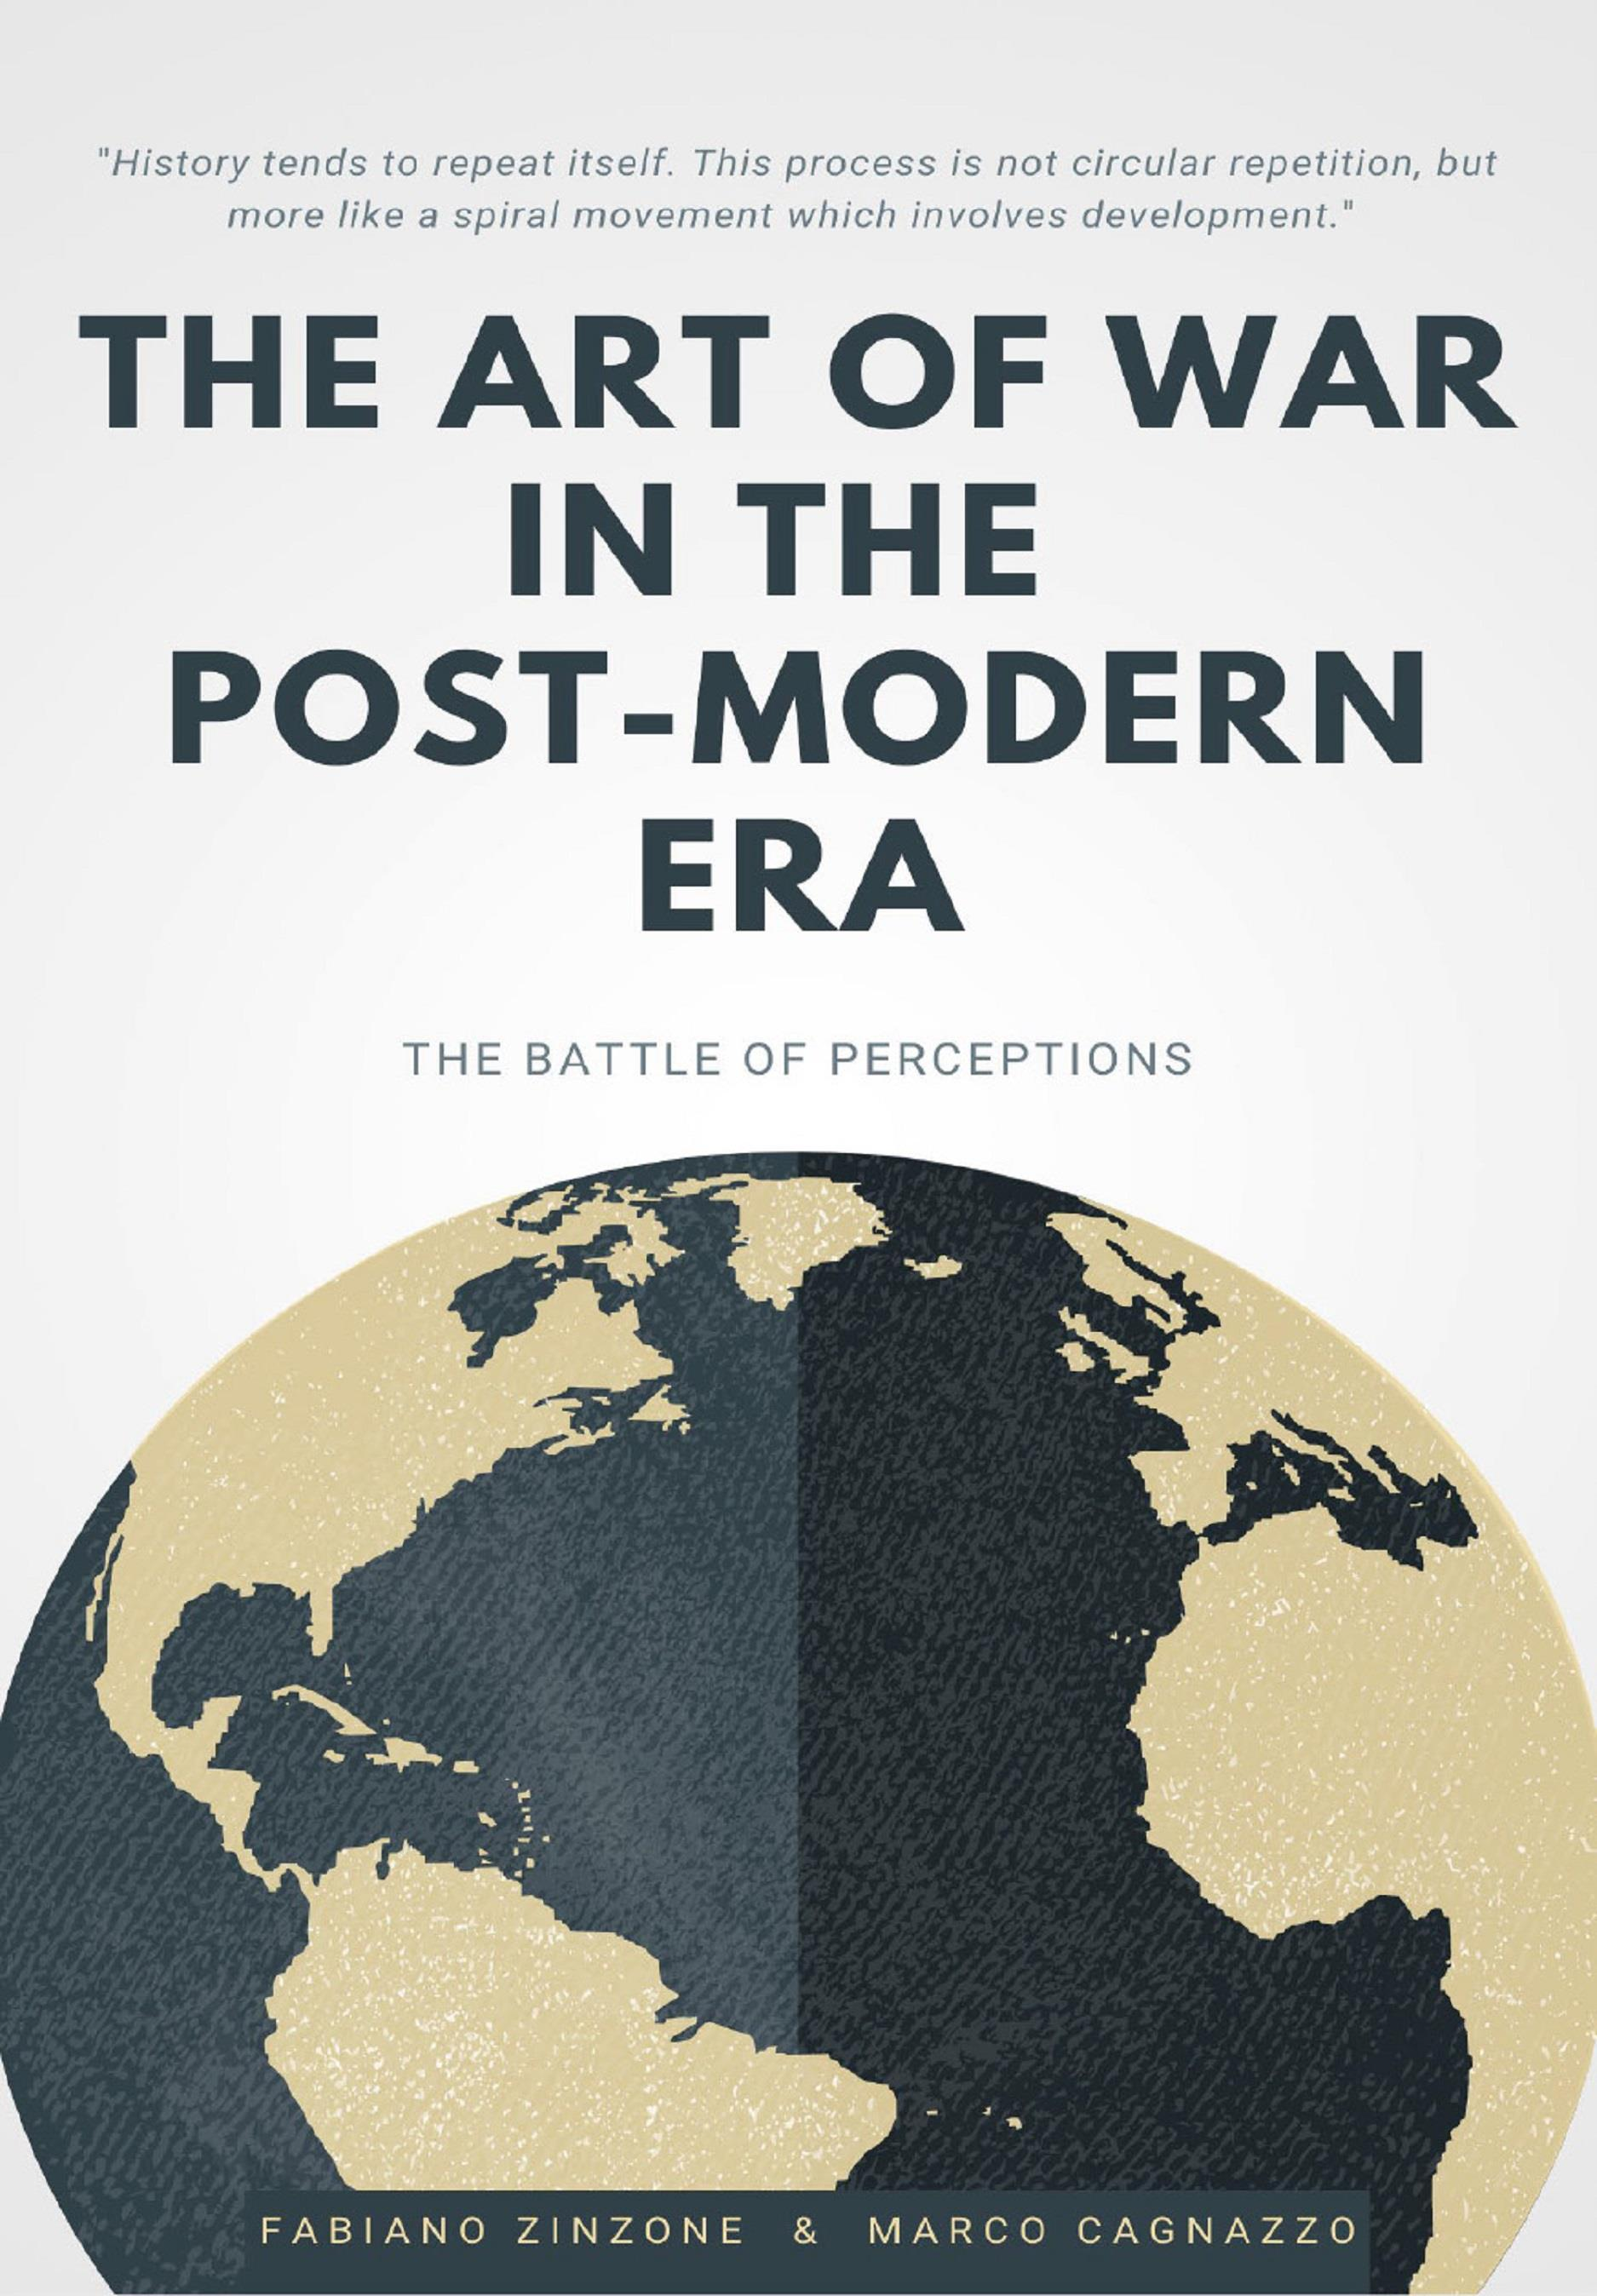 THE ART OF WAR IN THE POST-MODERN ERA. The Battle of Perceptions